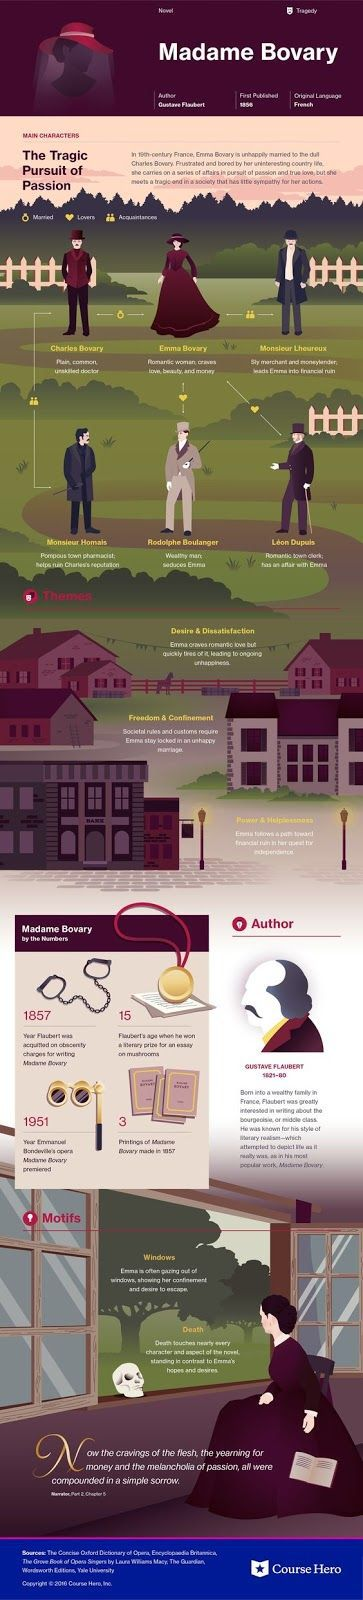 Madame Bovary Infographic